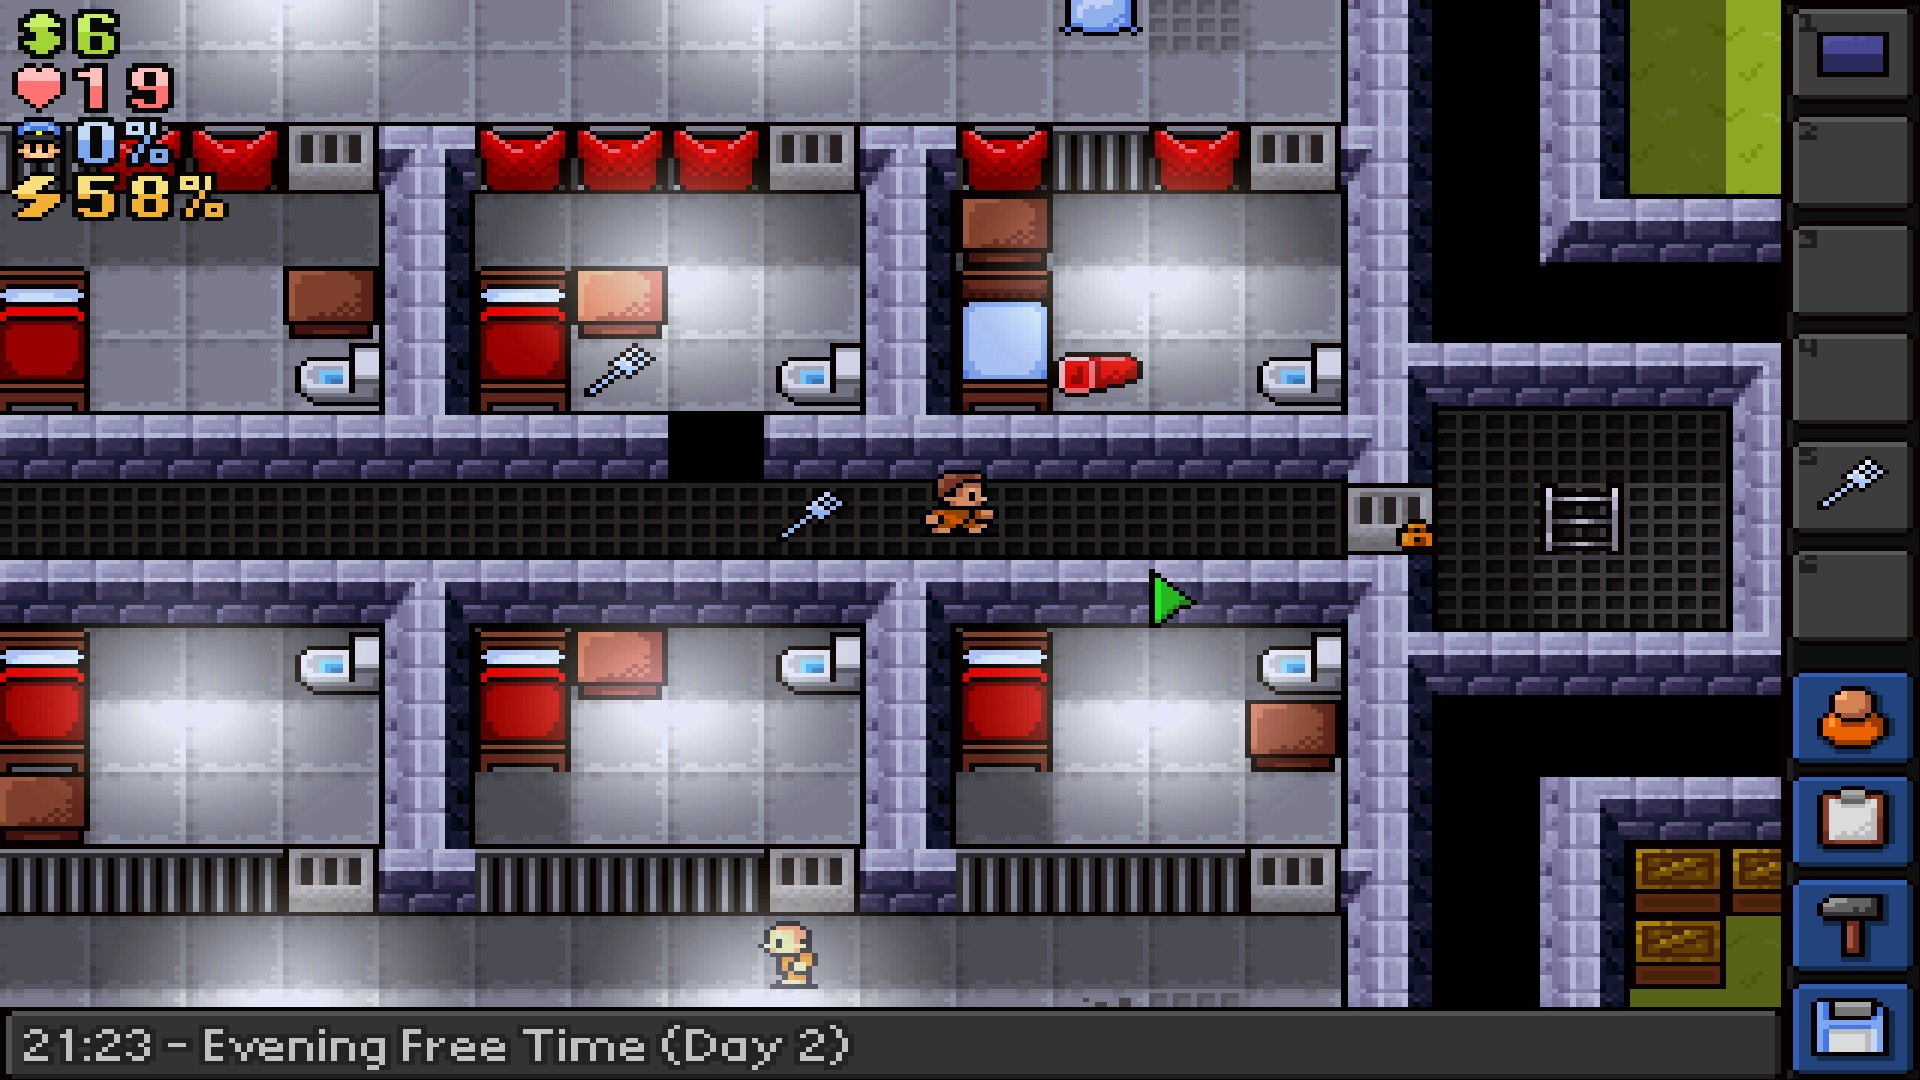 The Escapists - Fhurst Peak Correctional Facility [Online Game Code] by Team17 (Image #5)